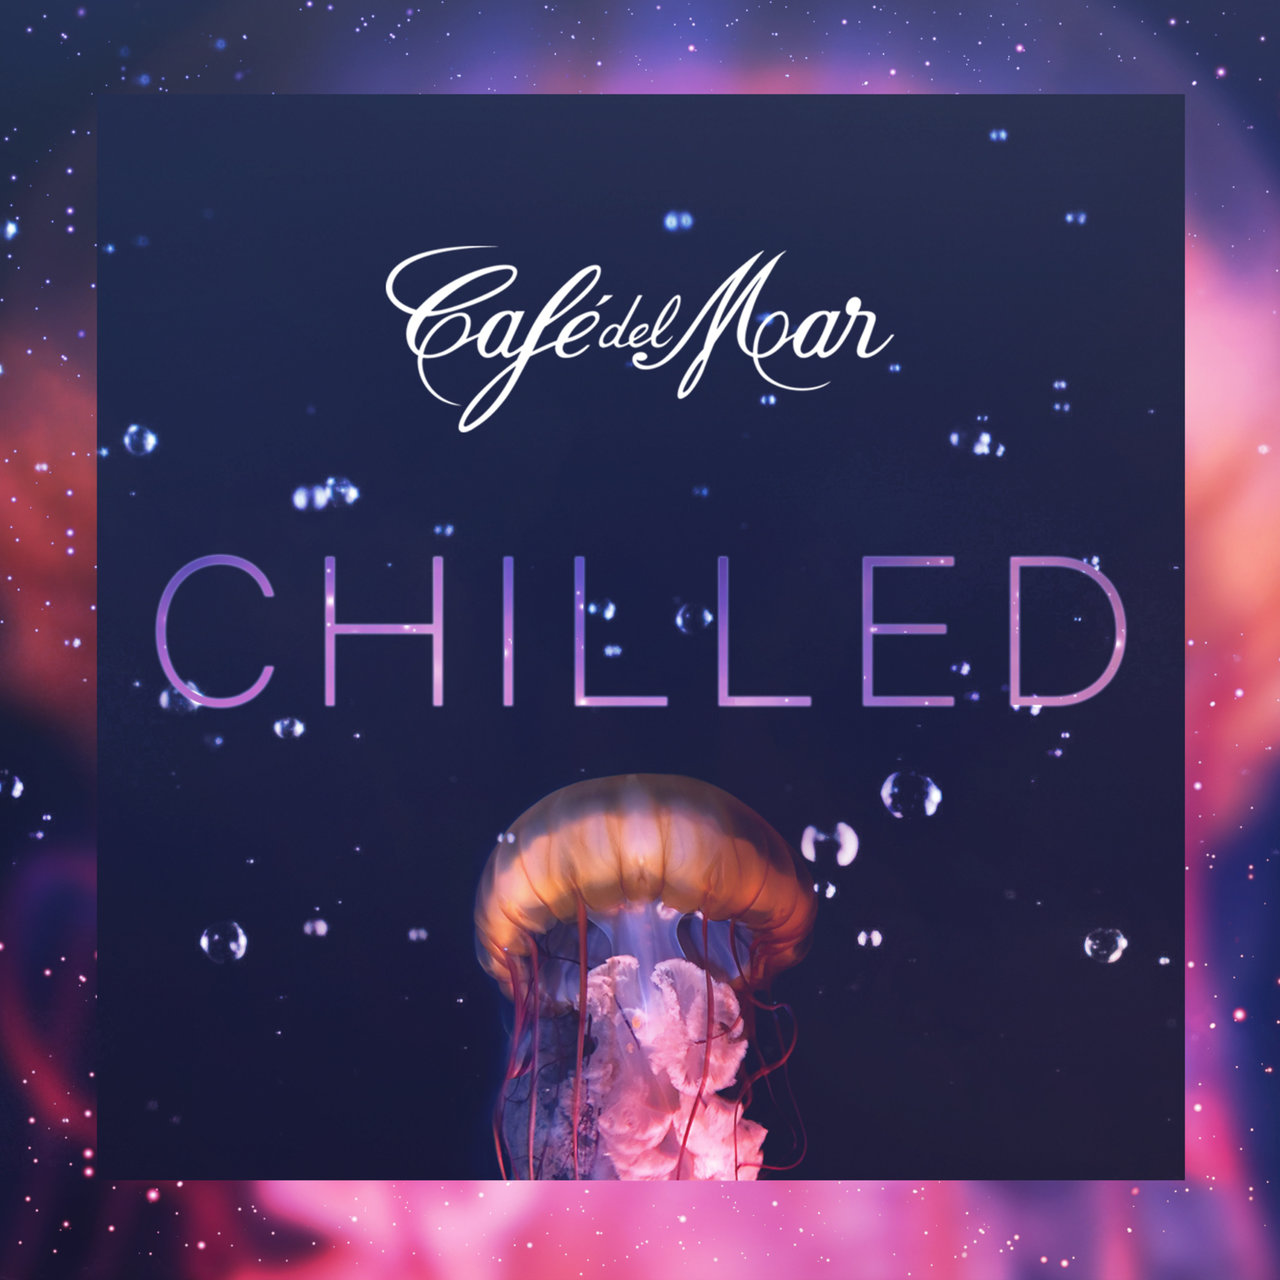 Café del Mar Chilled